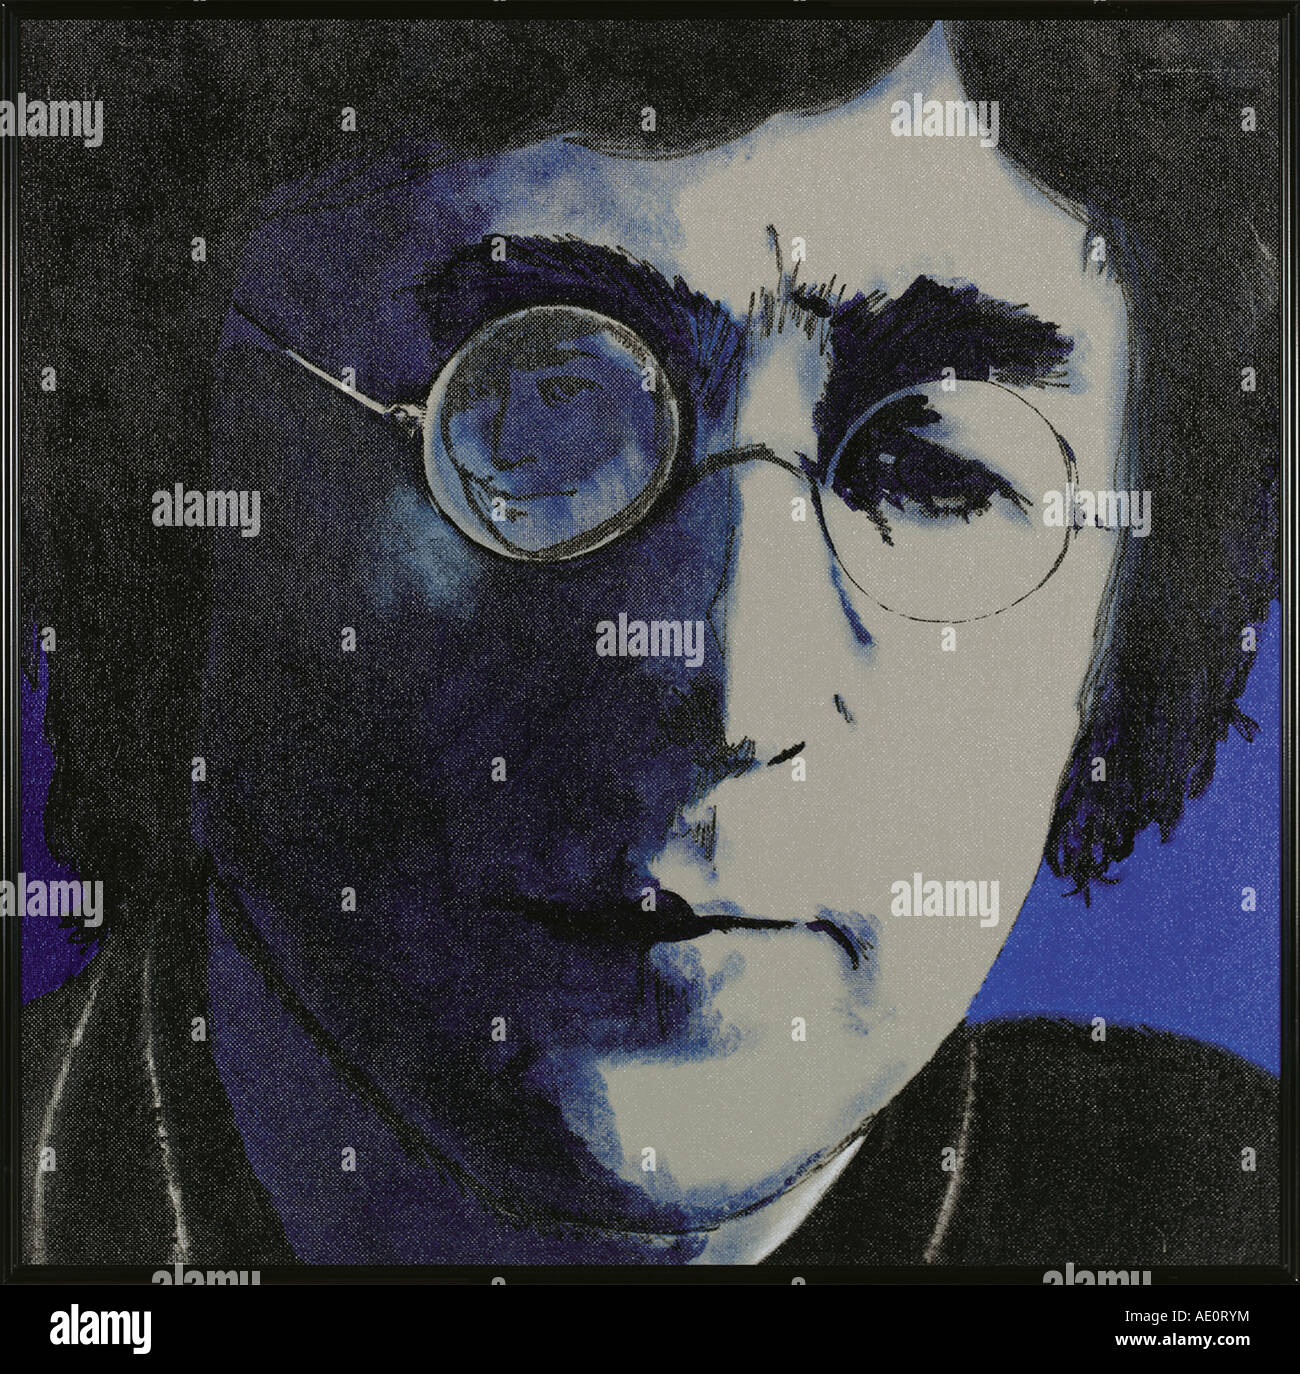 John Lennon painting by nick oudshoorn 1997 - Stock Image